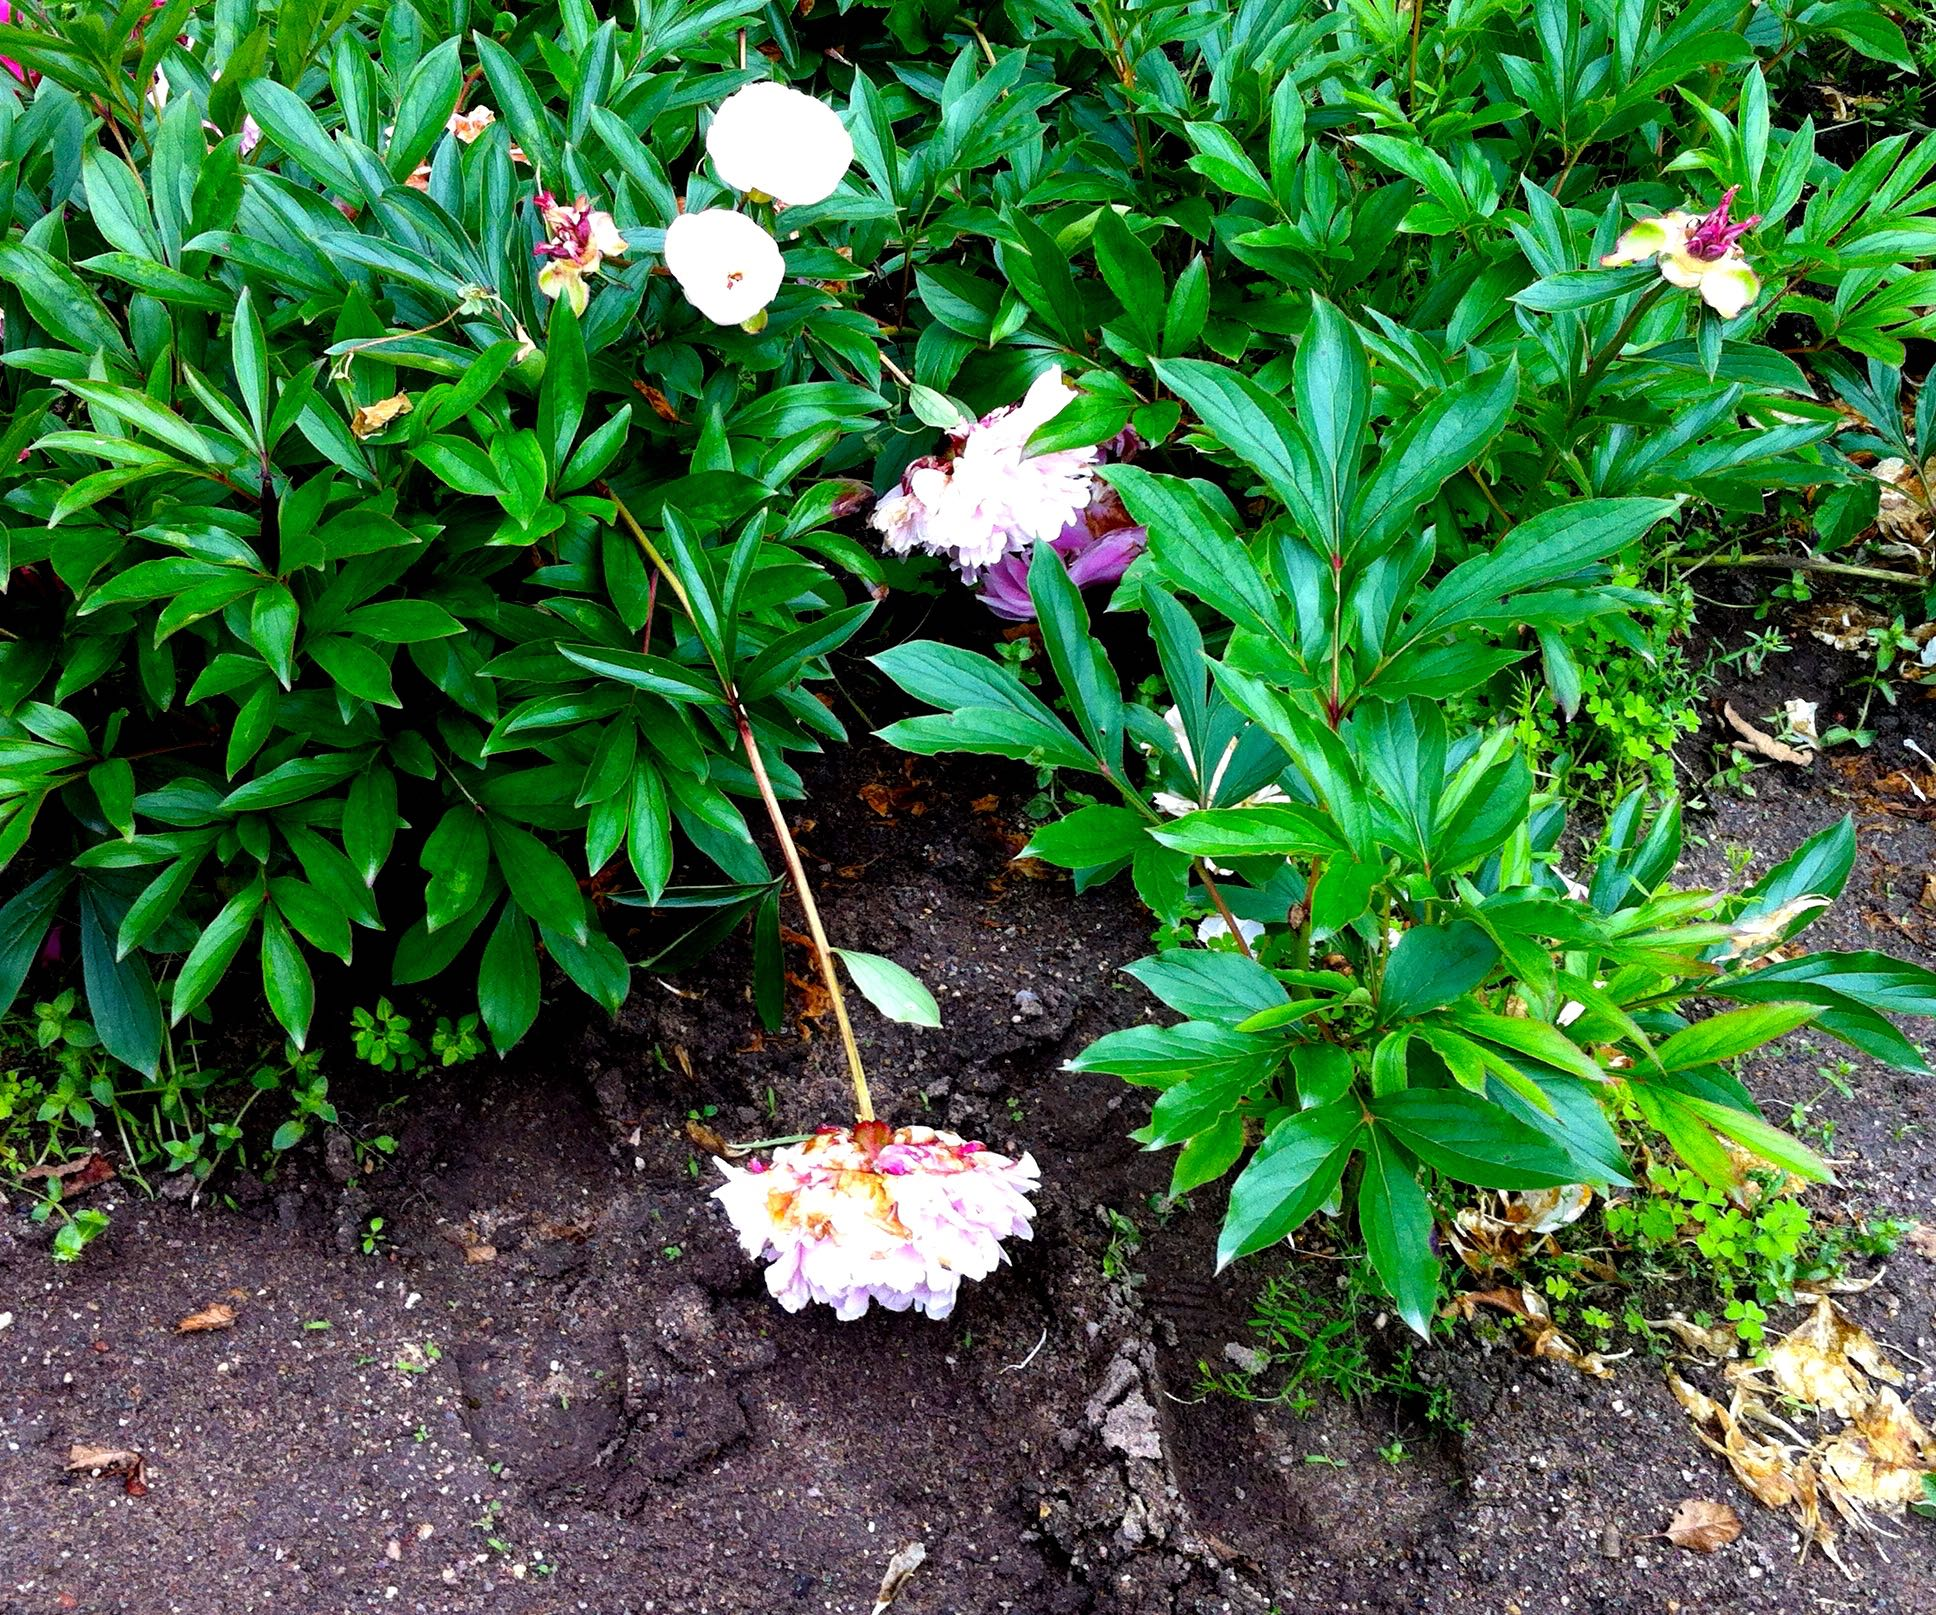 the peonies in the flower garden at chateau de chenonceau struggled to stay upright